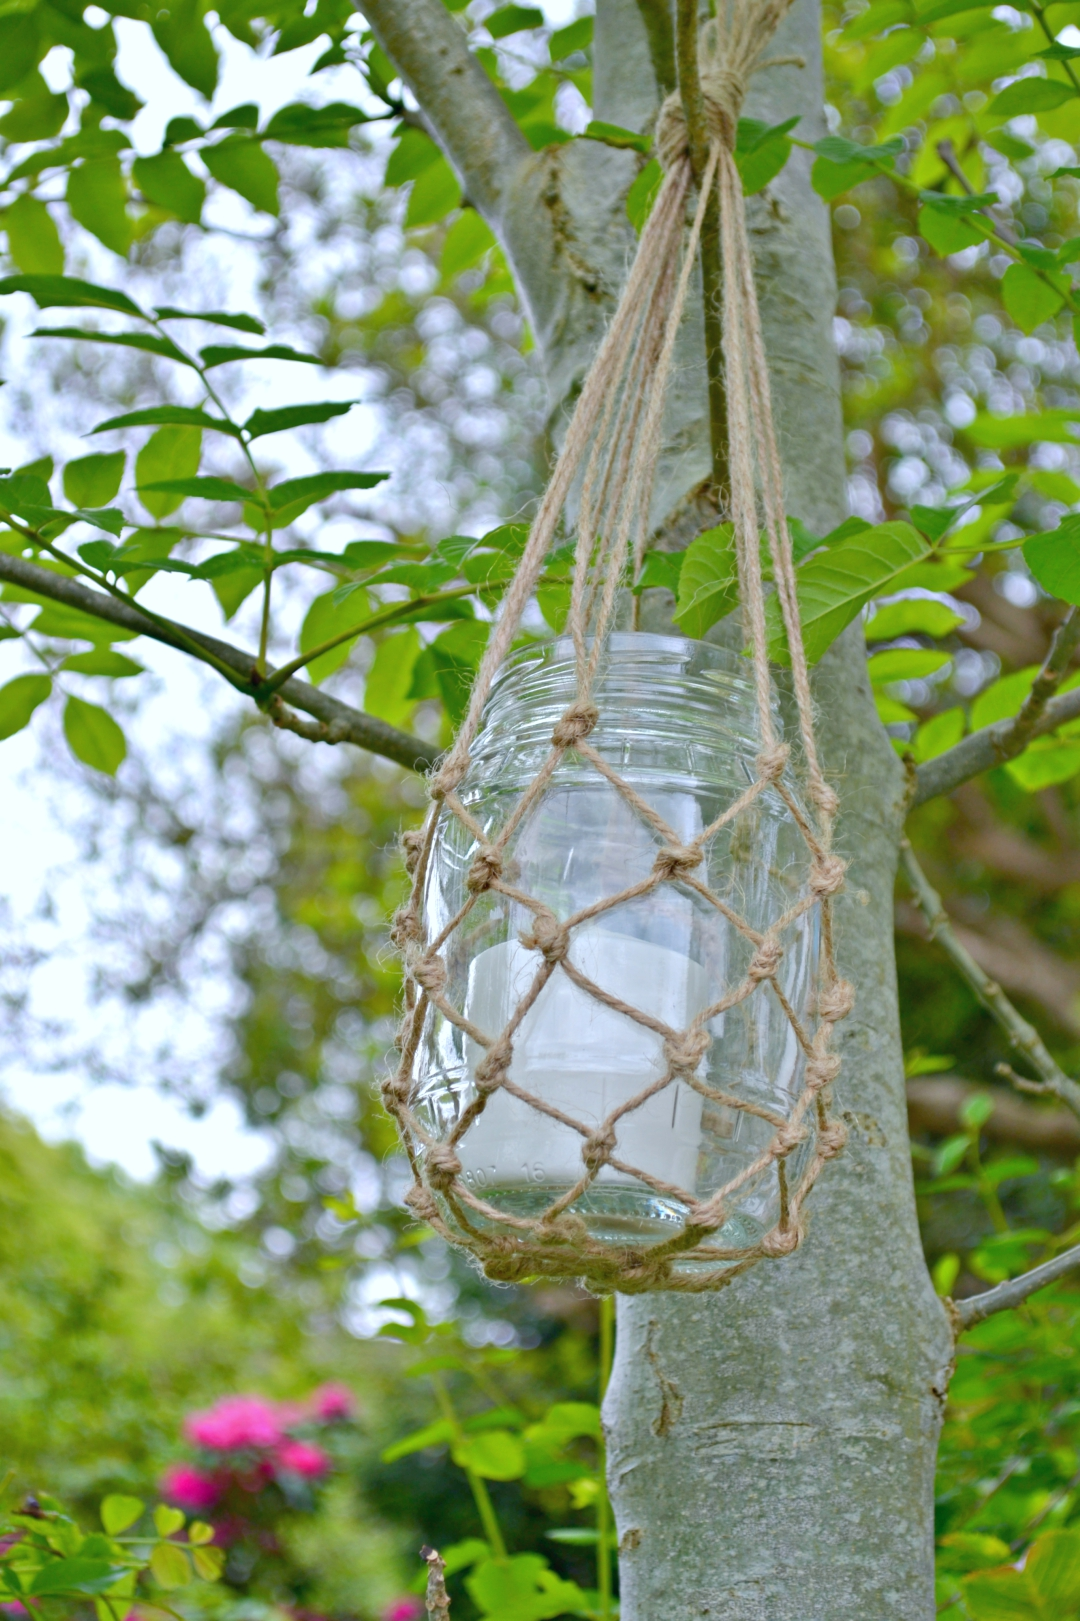 Macrame how to - hanging lantern jars